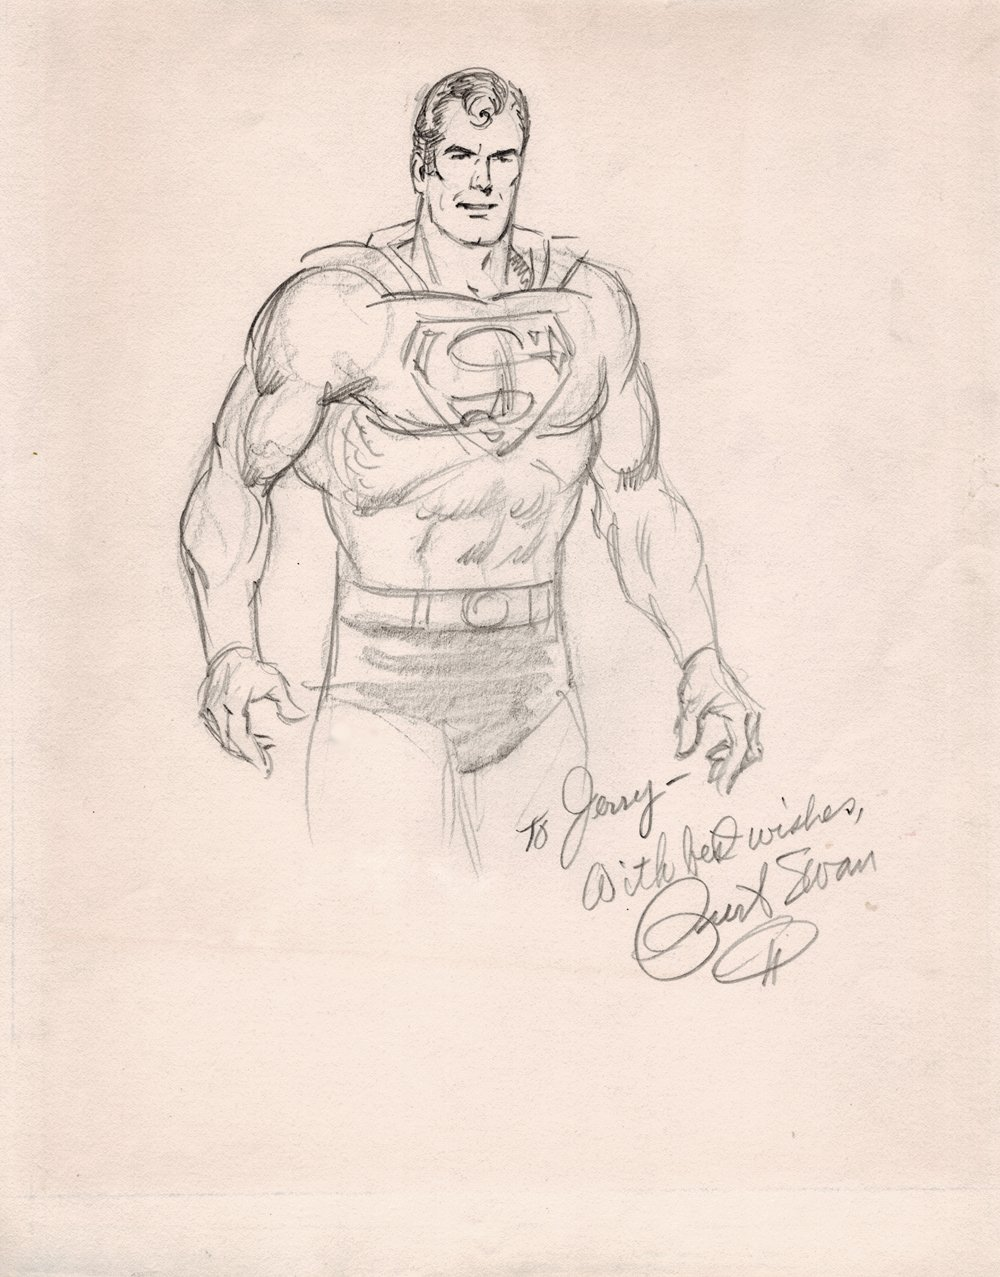 Superman Detailed Pencil Pinup (1970s)